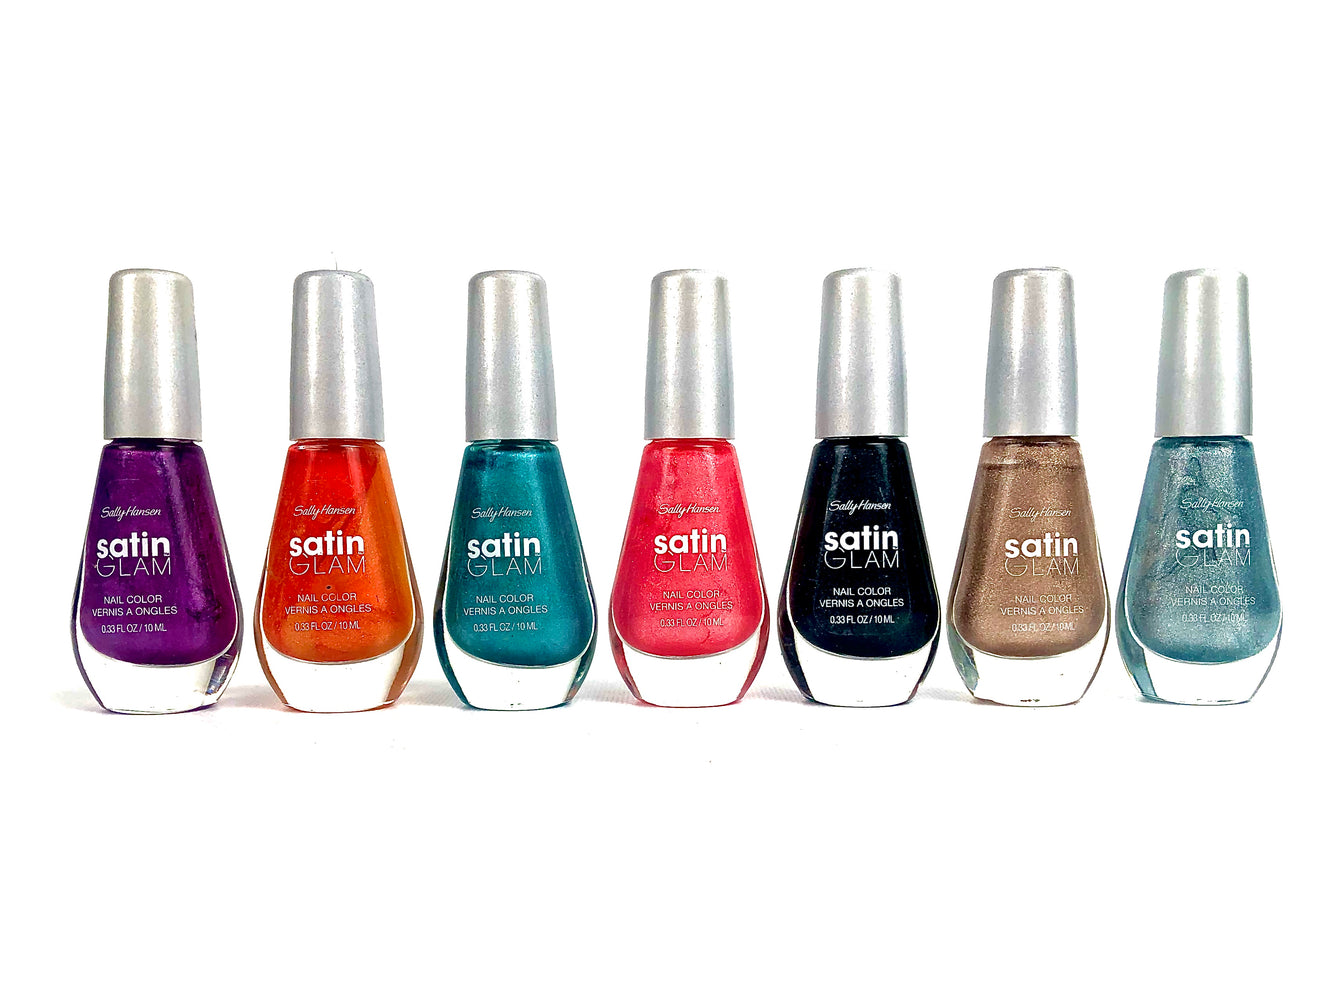 Sally Hansen Satin Glam Nail Color 50 piece count